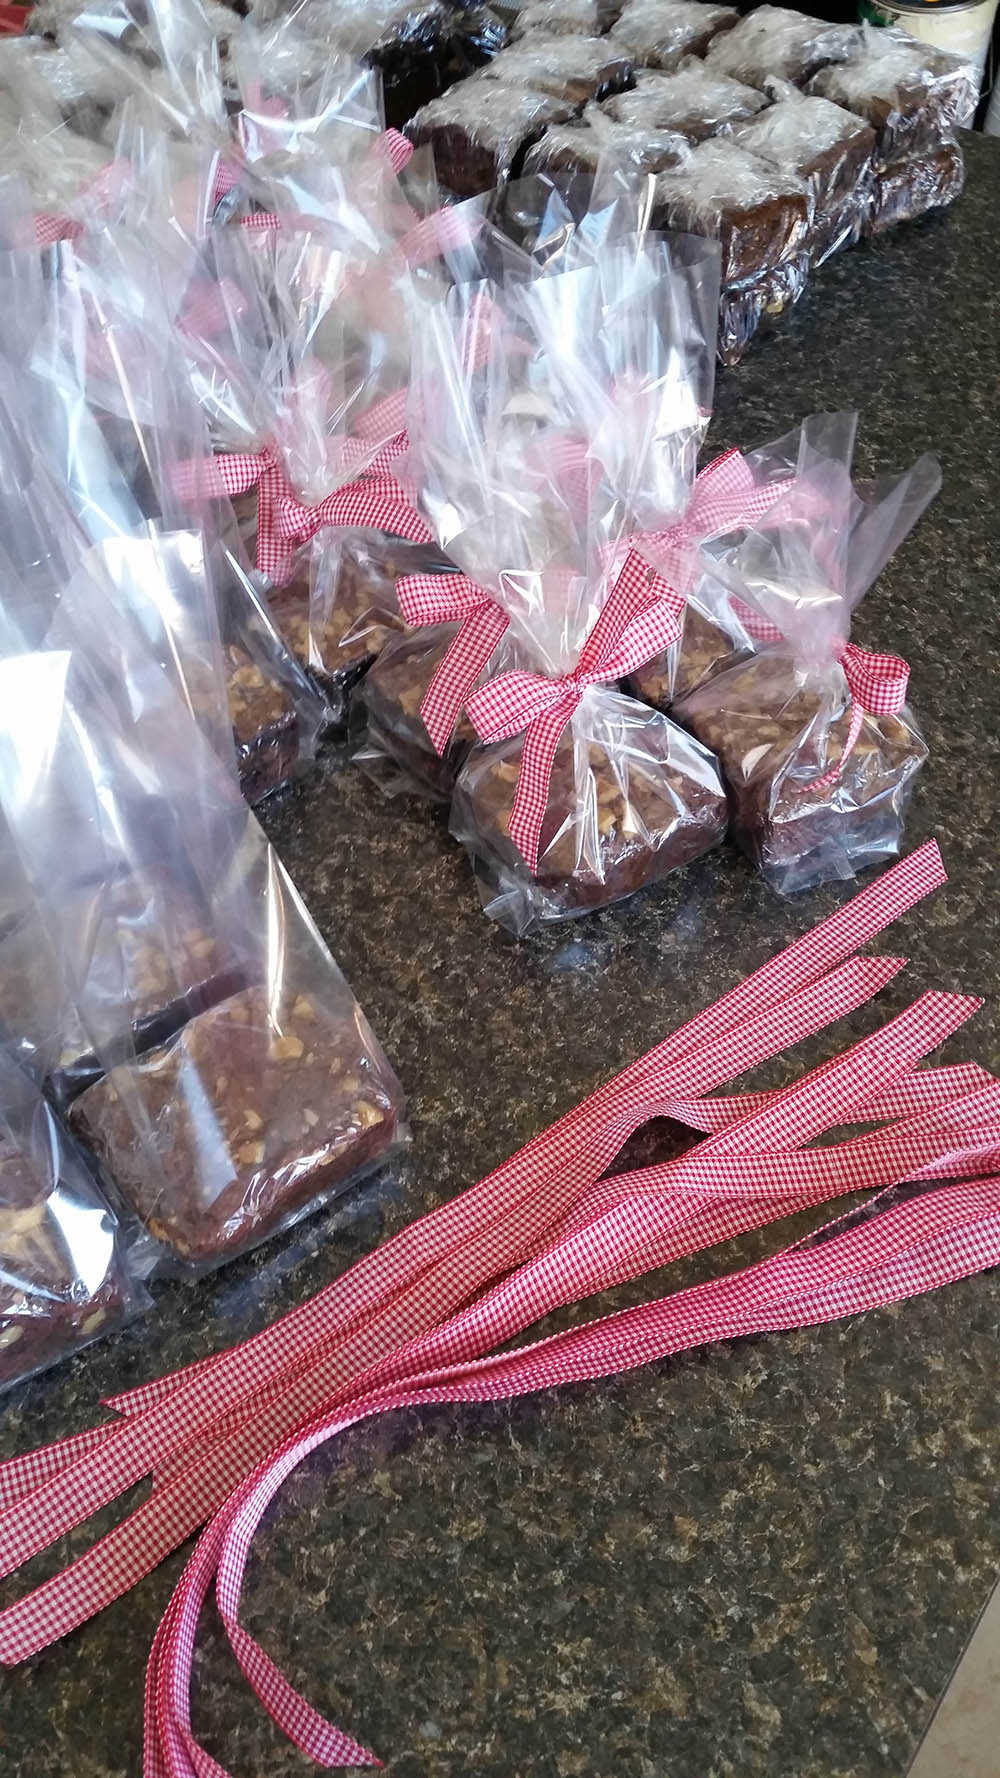 brownies being packaged for a corporate event